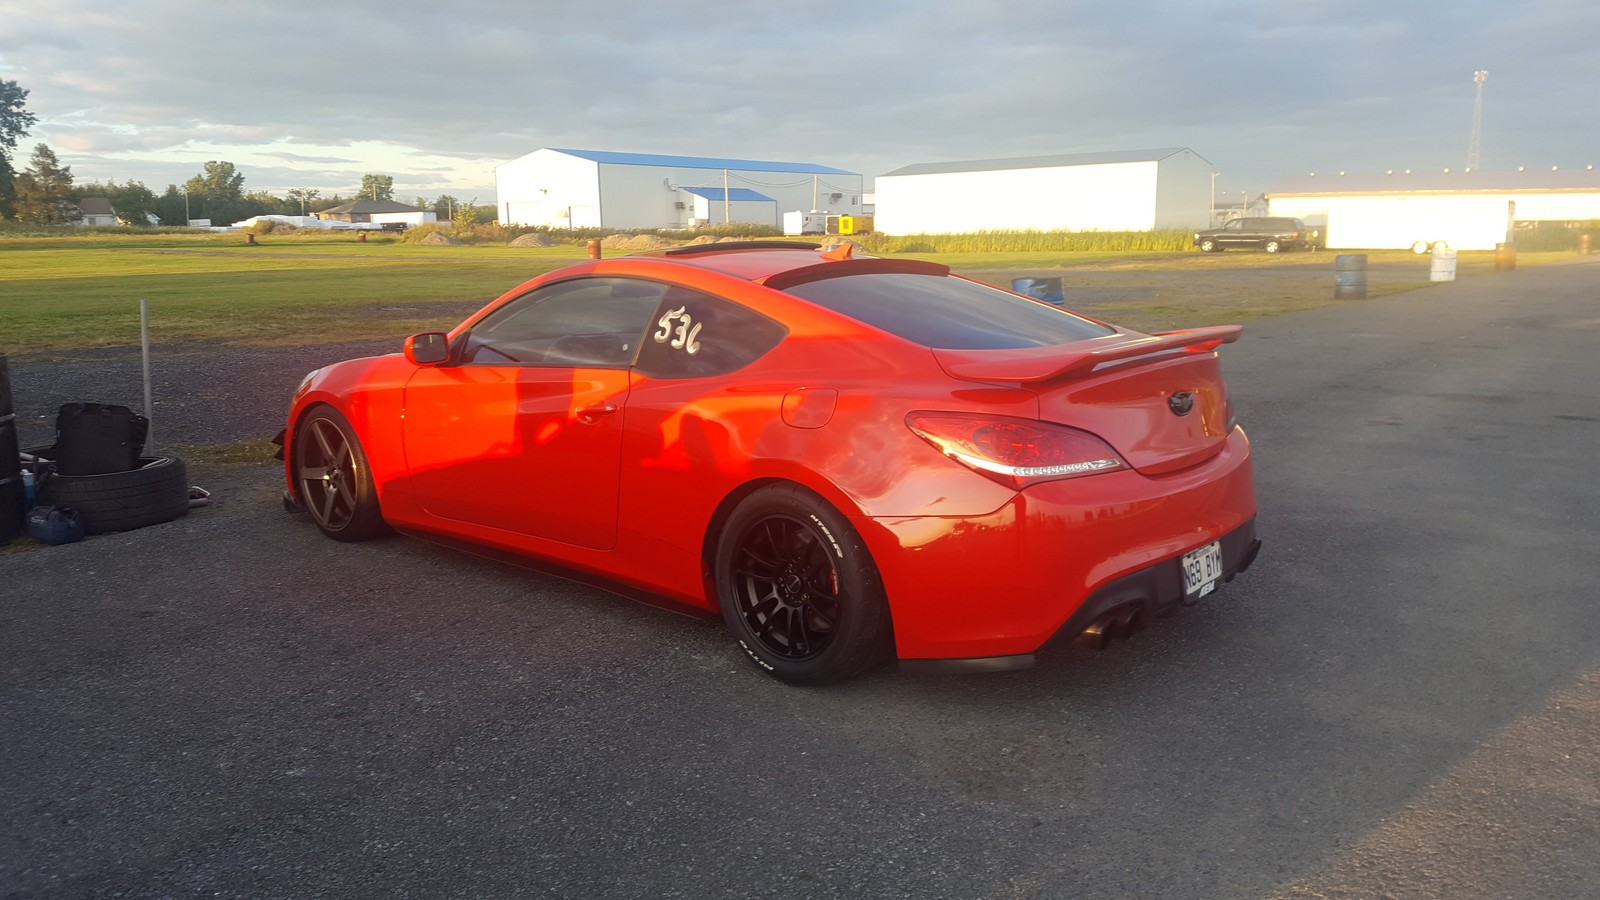 The venue is competitively priced and the shortest suv in its class, perfect for those who need a more compact vehicle. 2011 Hyundai Genesis Coupe RSpecs 1/4 mile Drag Racing